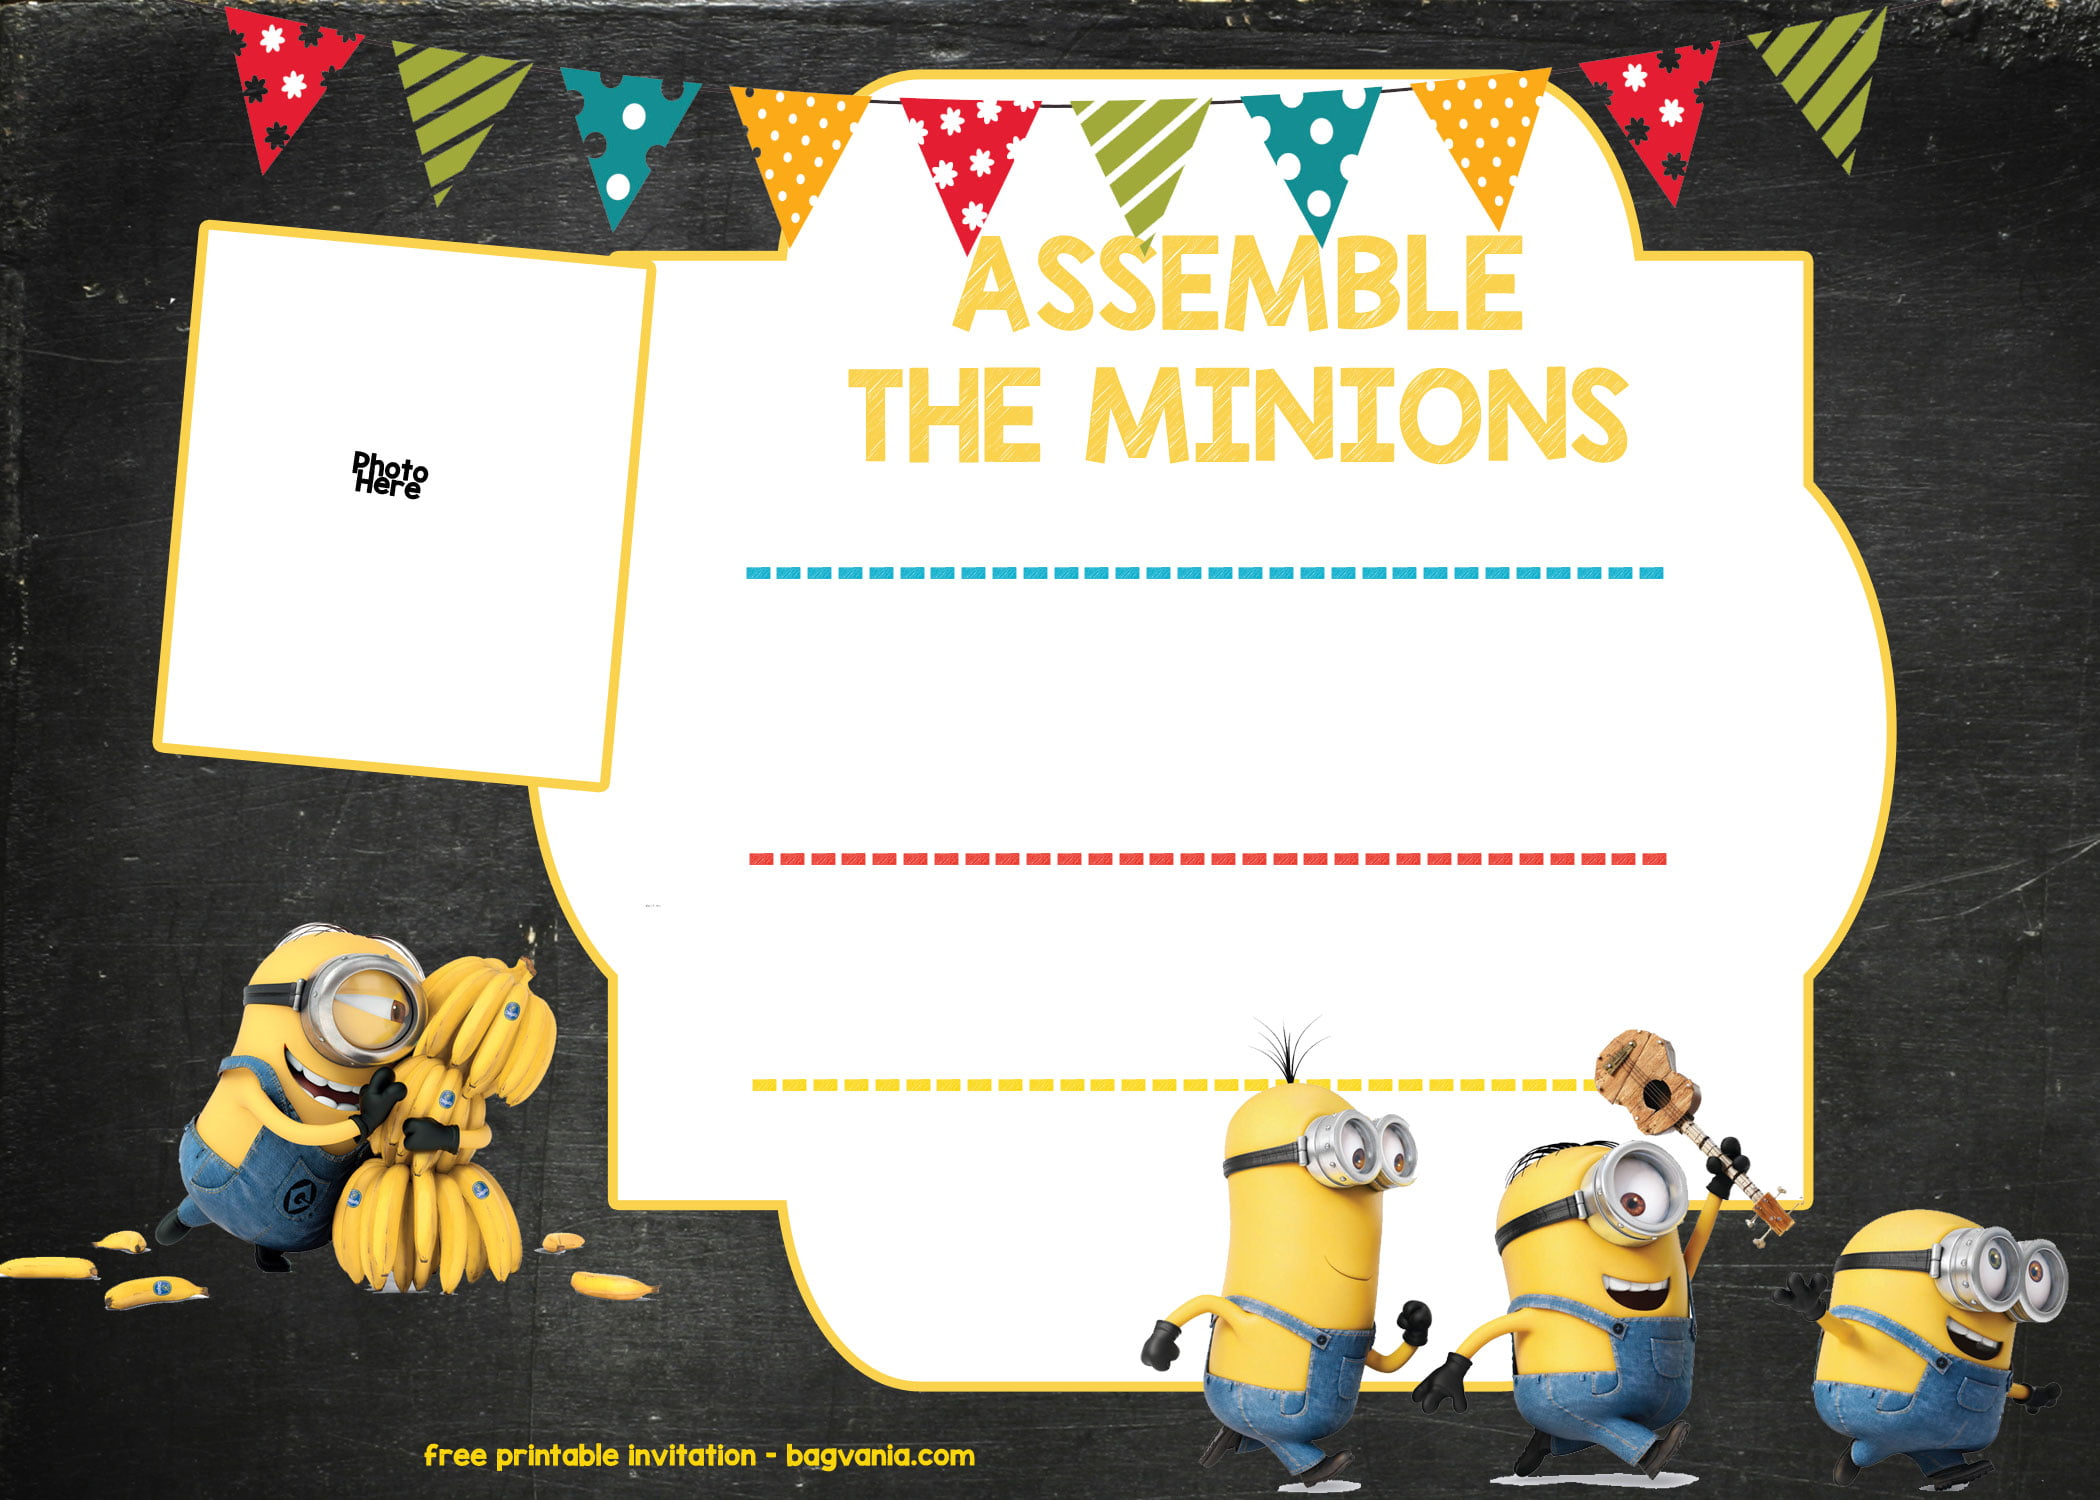 photograph about Free Printable Minion Invitations referred to as Minion Birthday Invitation Template Cost-free Down load Cost-free